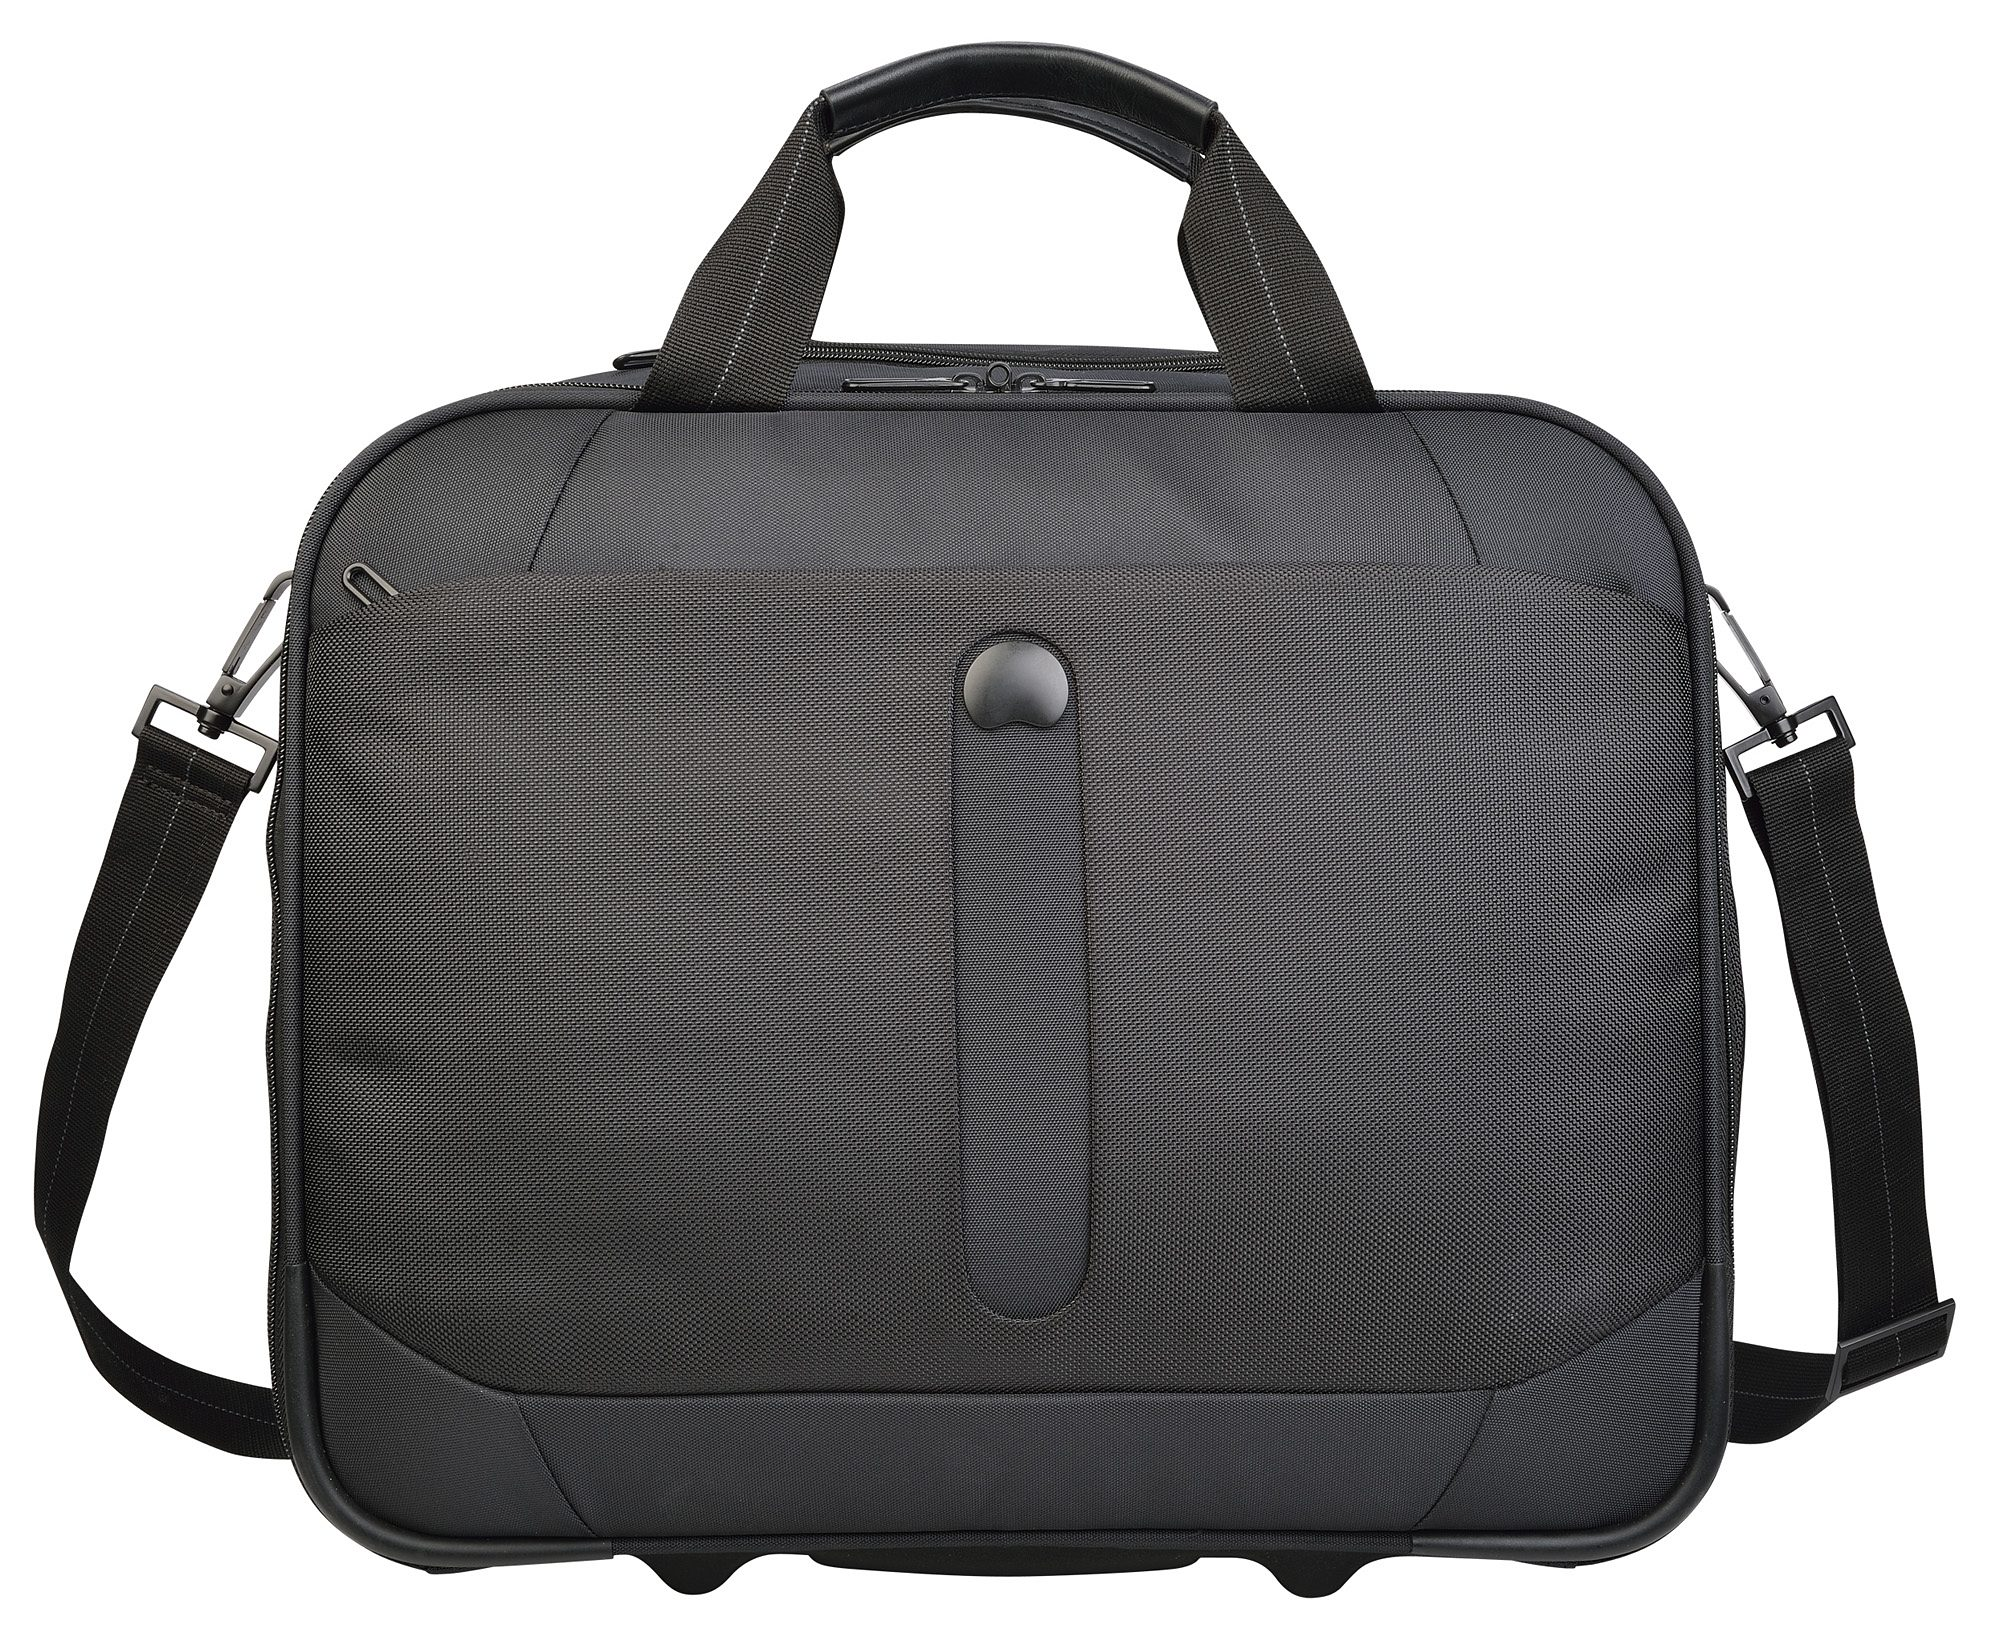 DELSEY Business Trolley mit 2 Rollen und 14-Zoll Laptopfach, »Bellecour«